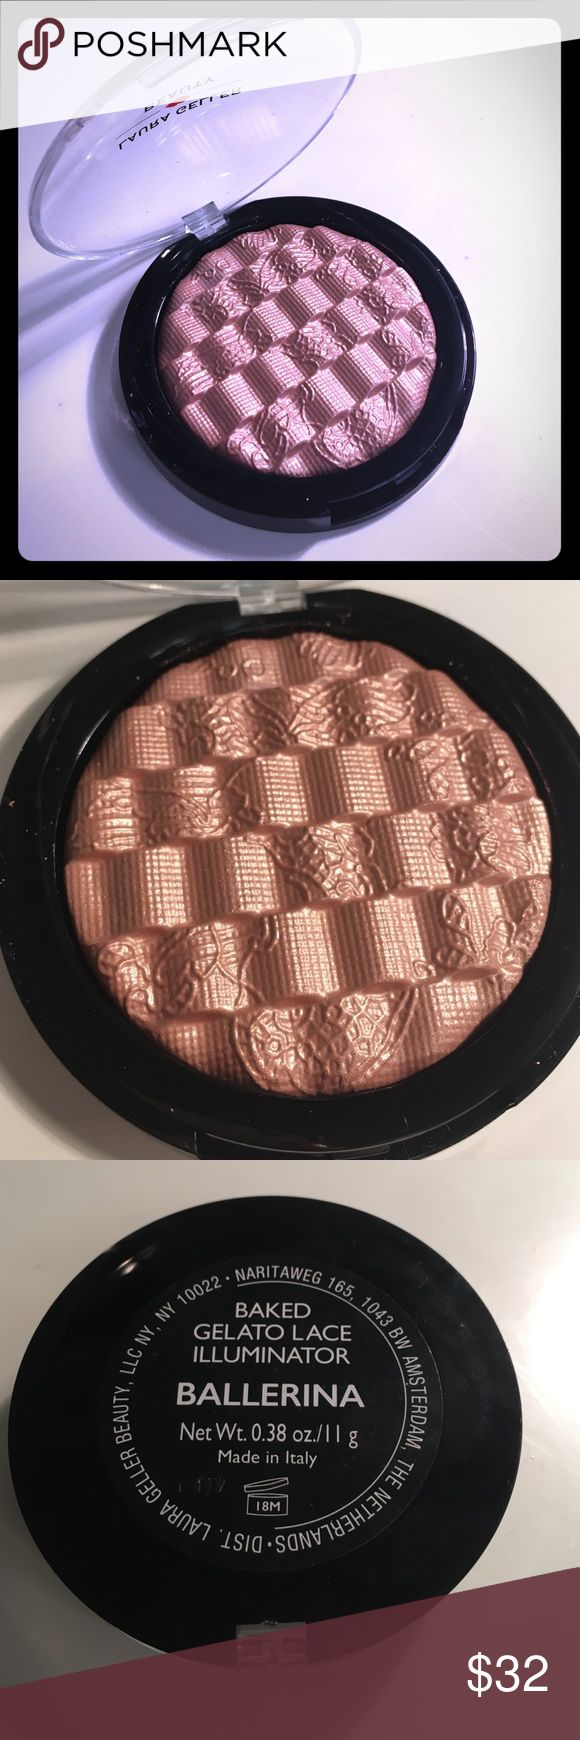 Laura geller ballerina highlighter Double the size of the original highlighter. This is like gilded honey, but has a pink beige undertone instead of gold. Brand new. laura geller Makeup Luminizer